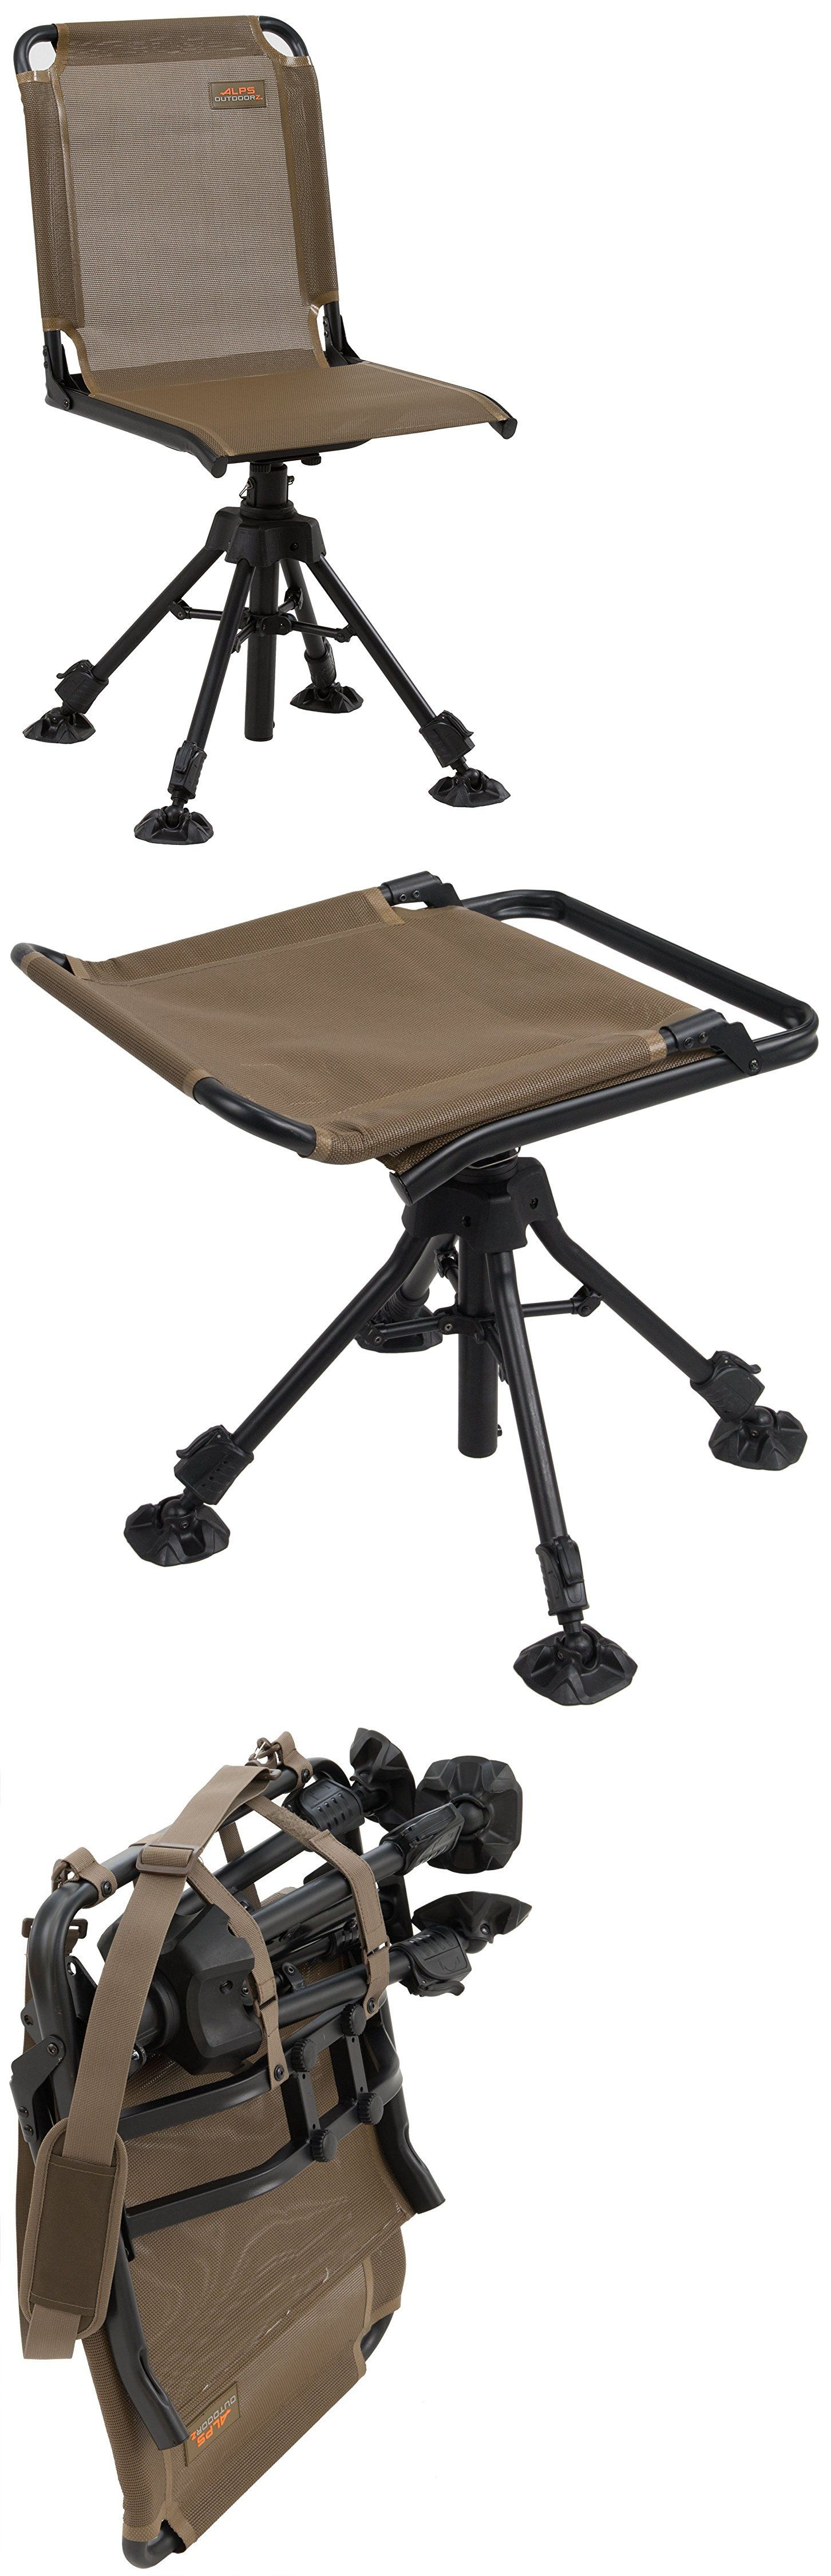 Seats and Chairs Alps Hunting Blind Chair BUY IT NOW